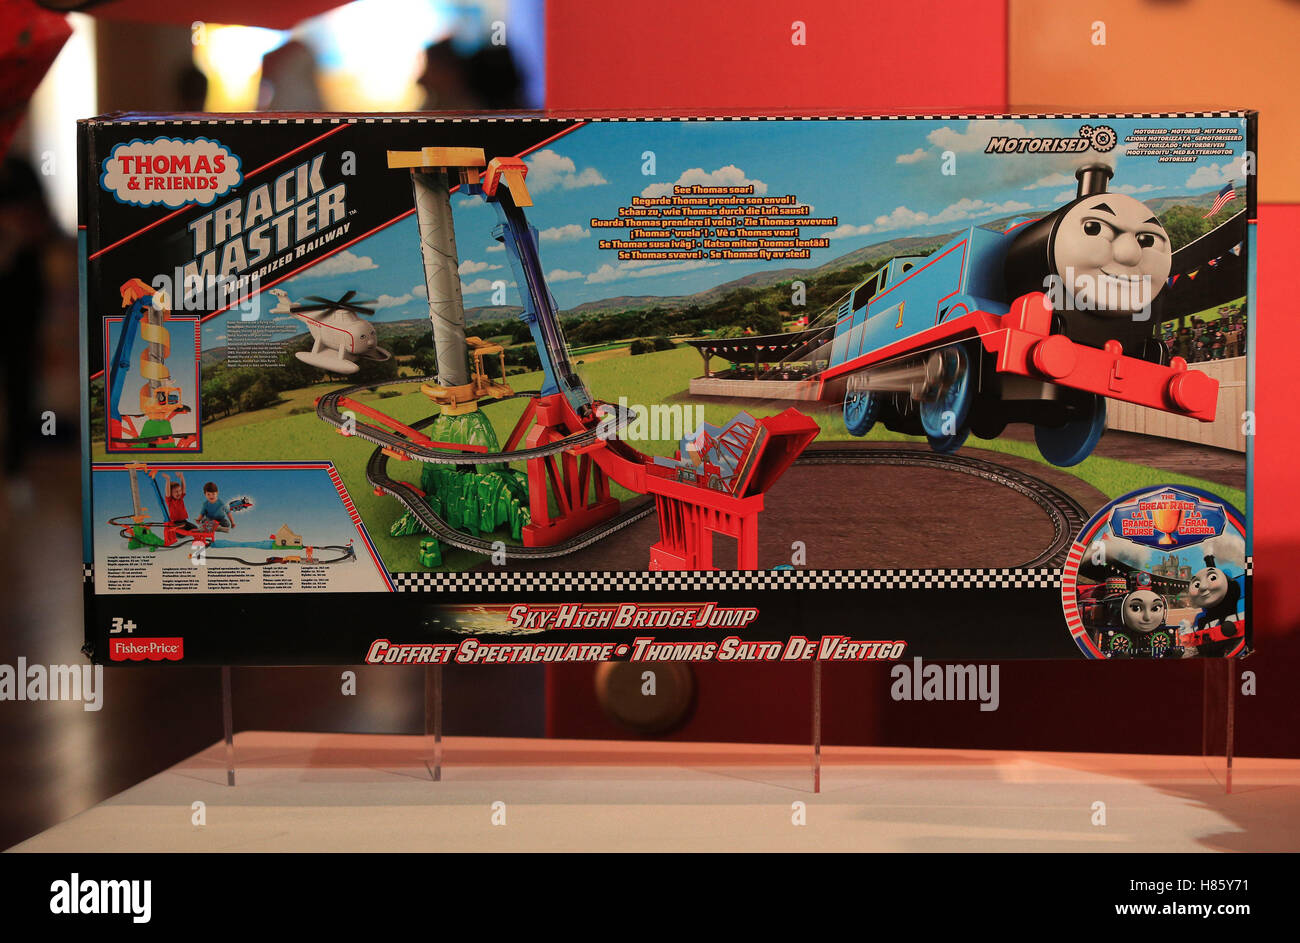 3942a73eb7a62f Thomas and Friends Trackmaster Sky-High Bridge Jump on display at the  DreamToys 2016 event held at St Mary's Church, Marylebone, London.